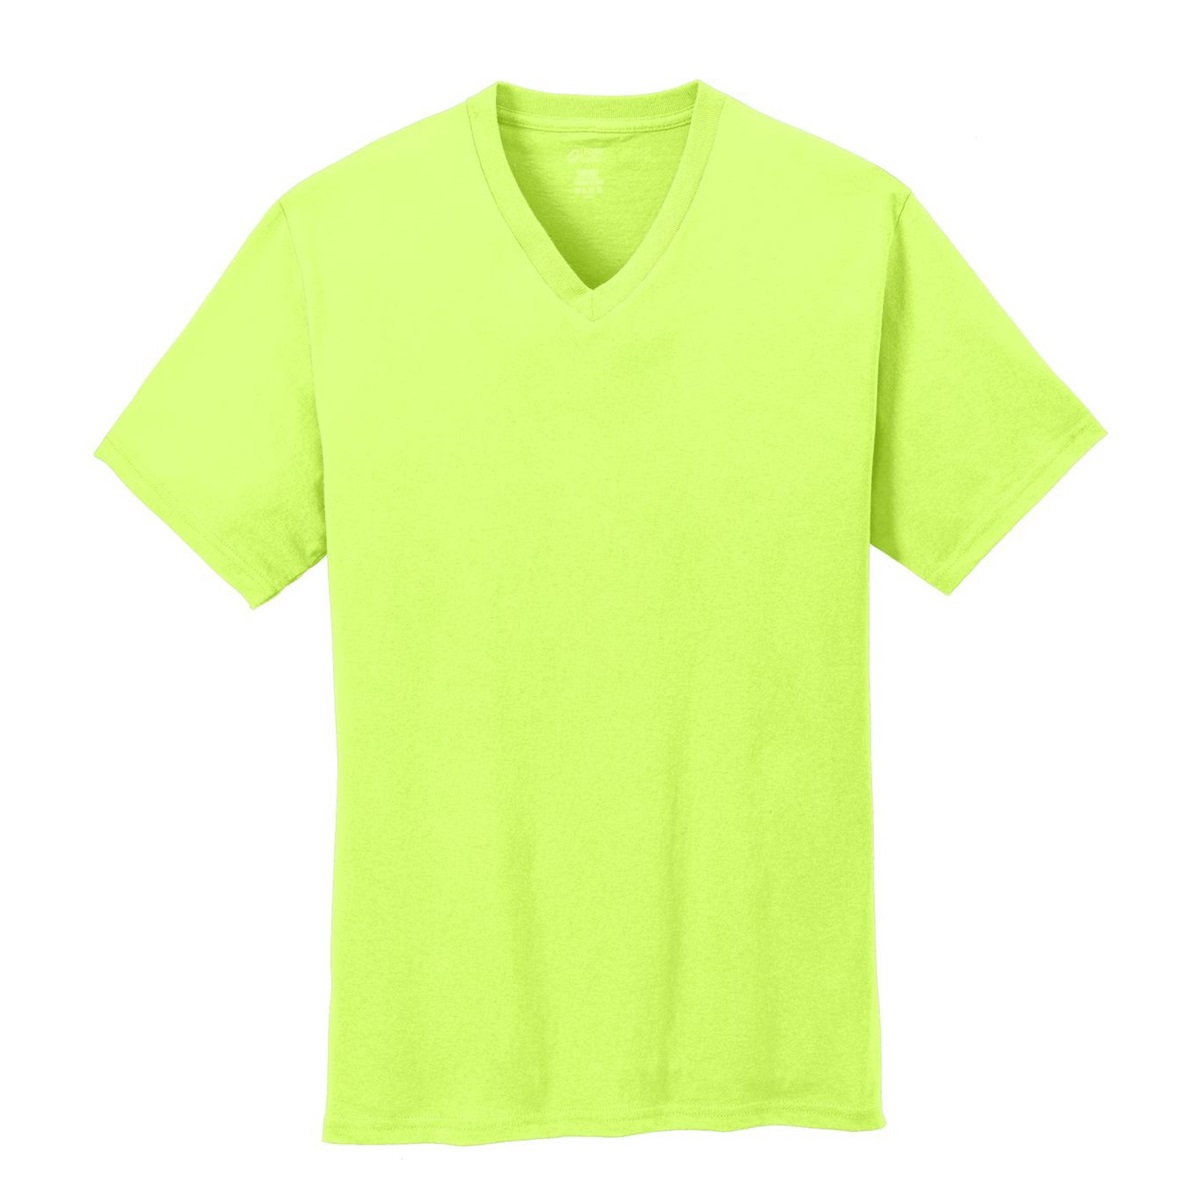 Port & Company PC54V 5.4-oz Cotton V-Neck T-Shirt - Neon ...